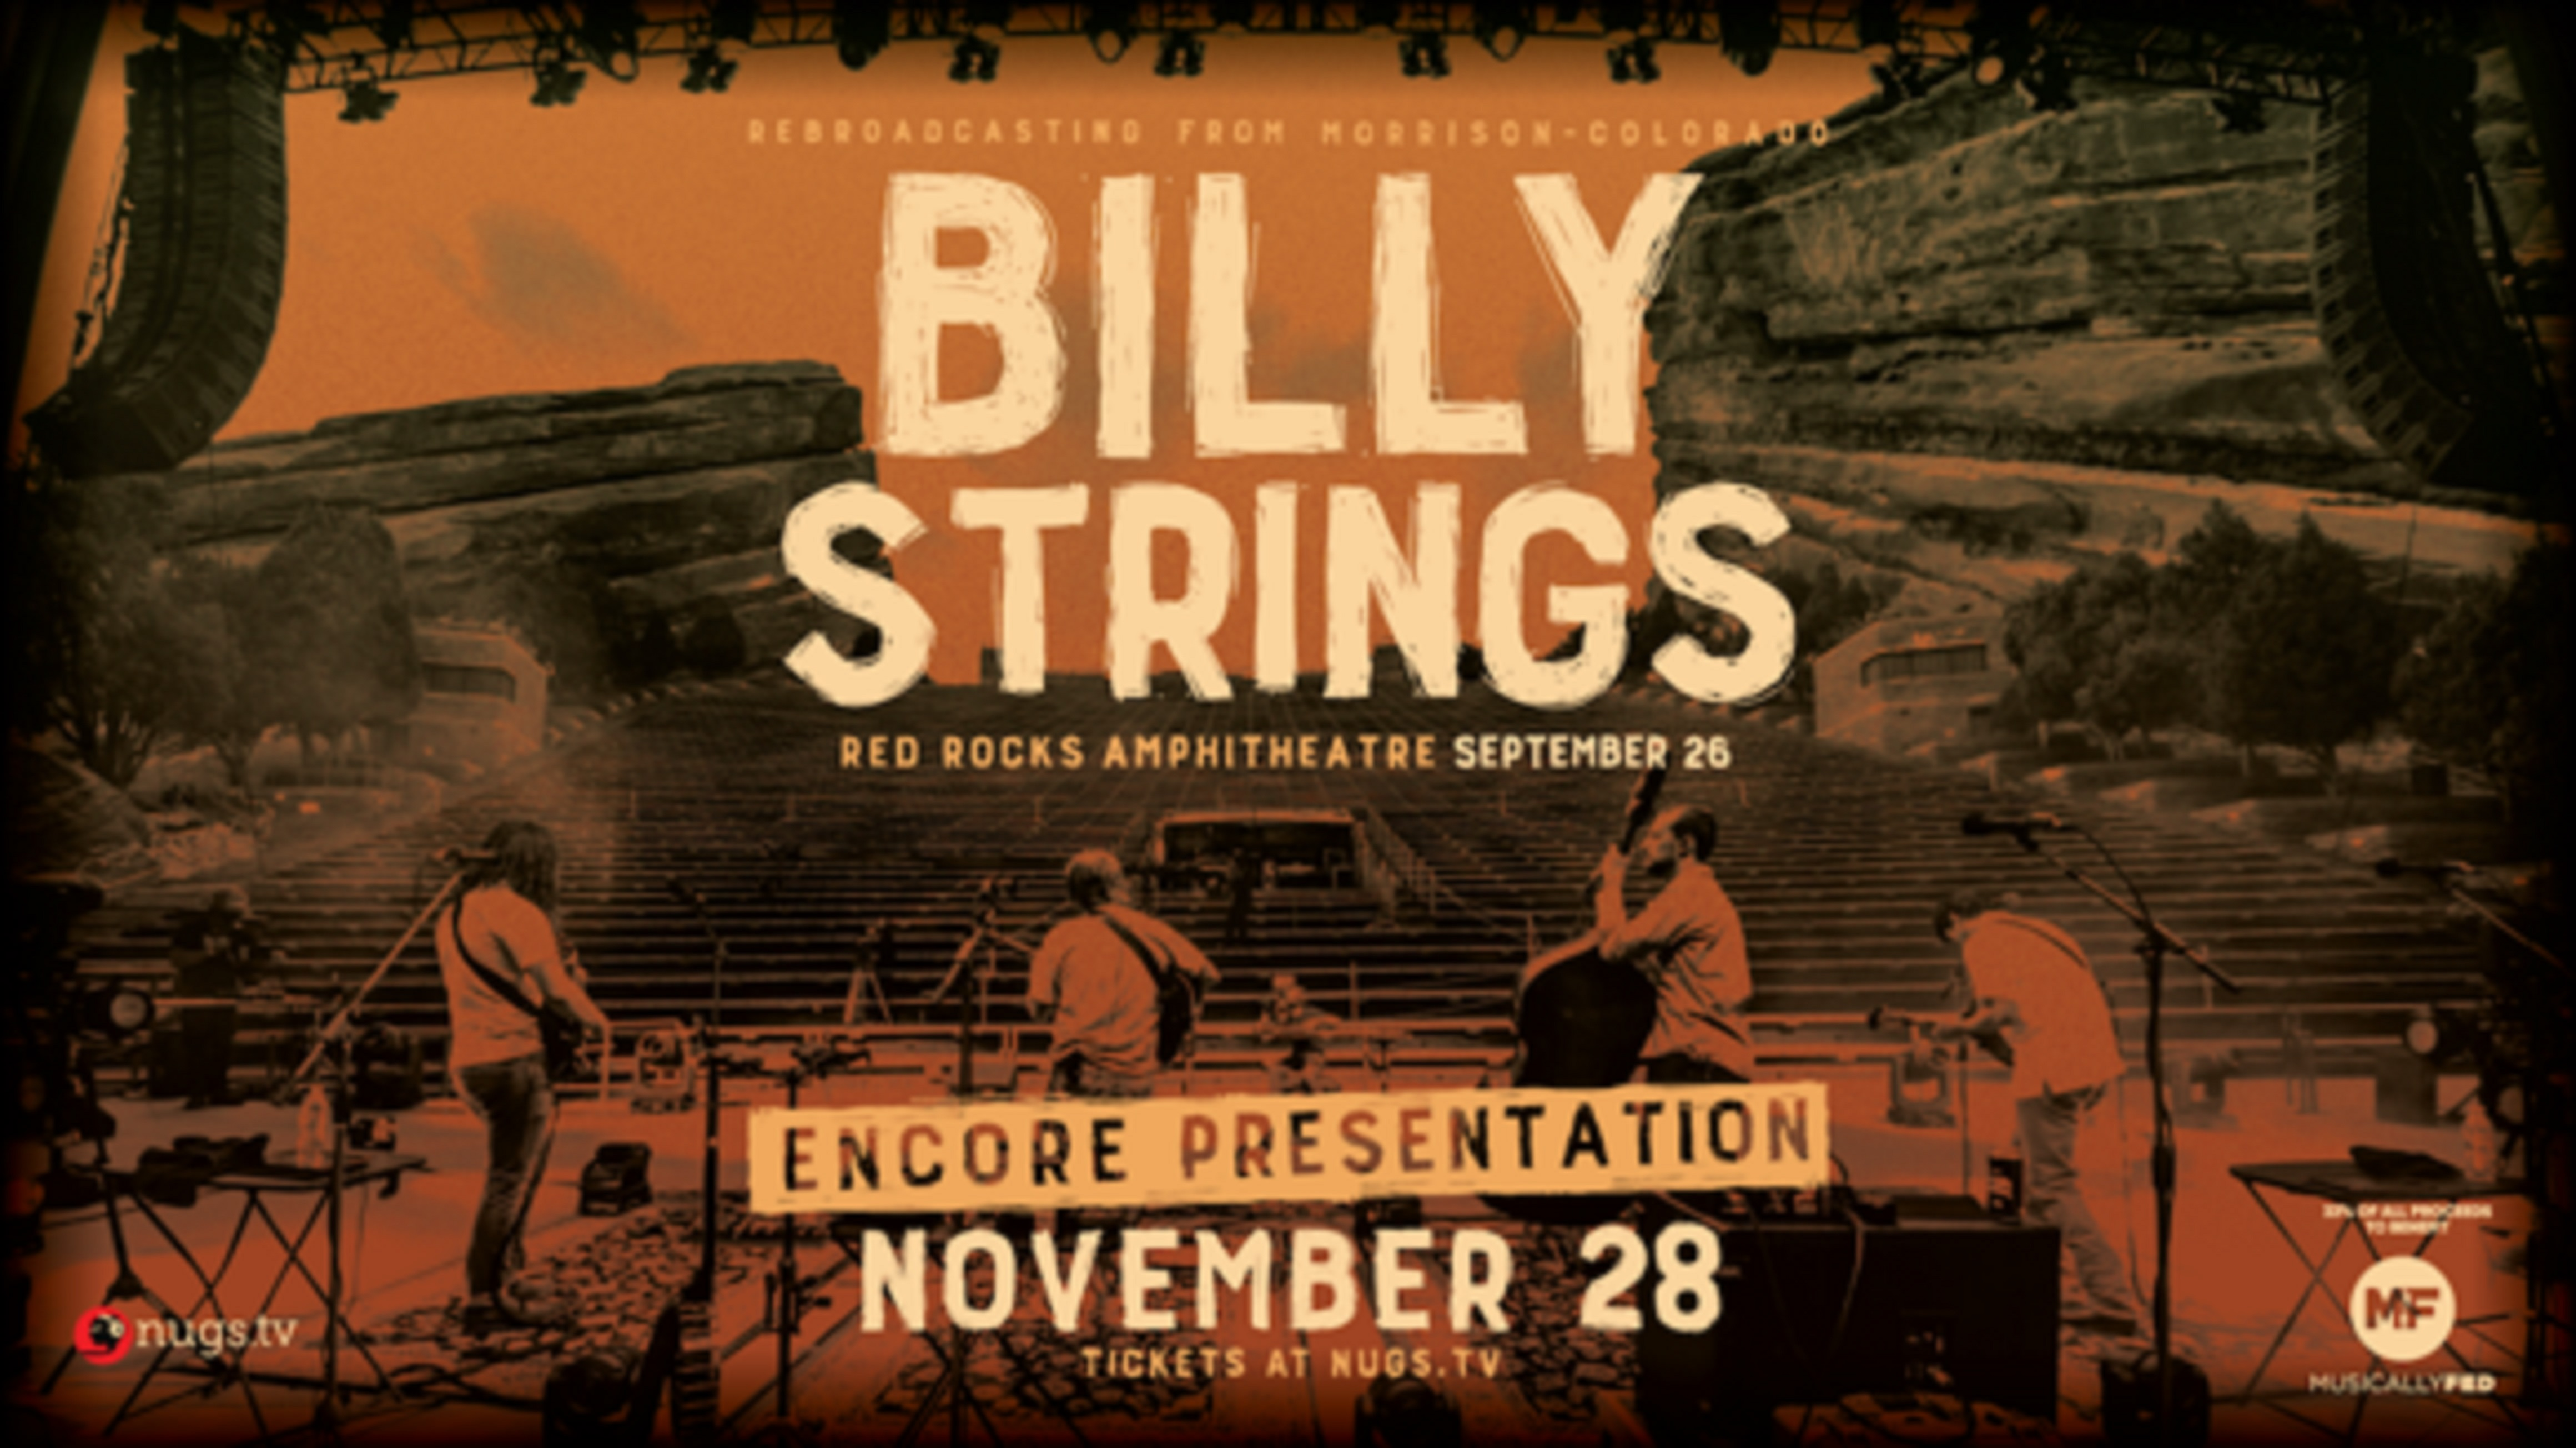 Billy Strings confirms encore broadcast of Red Rocks Amphitheatre livestream for November 28